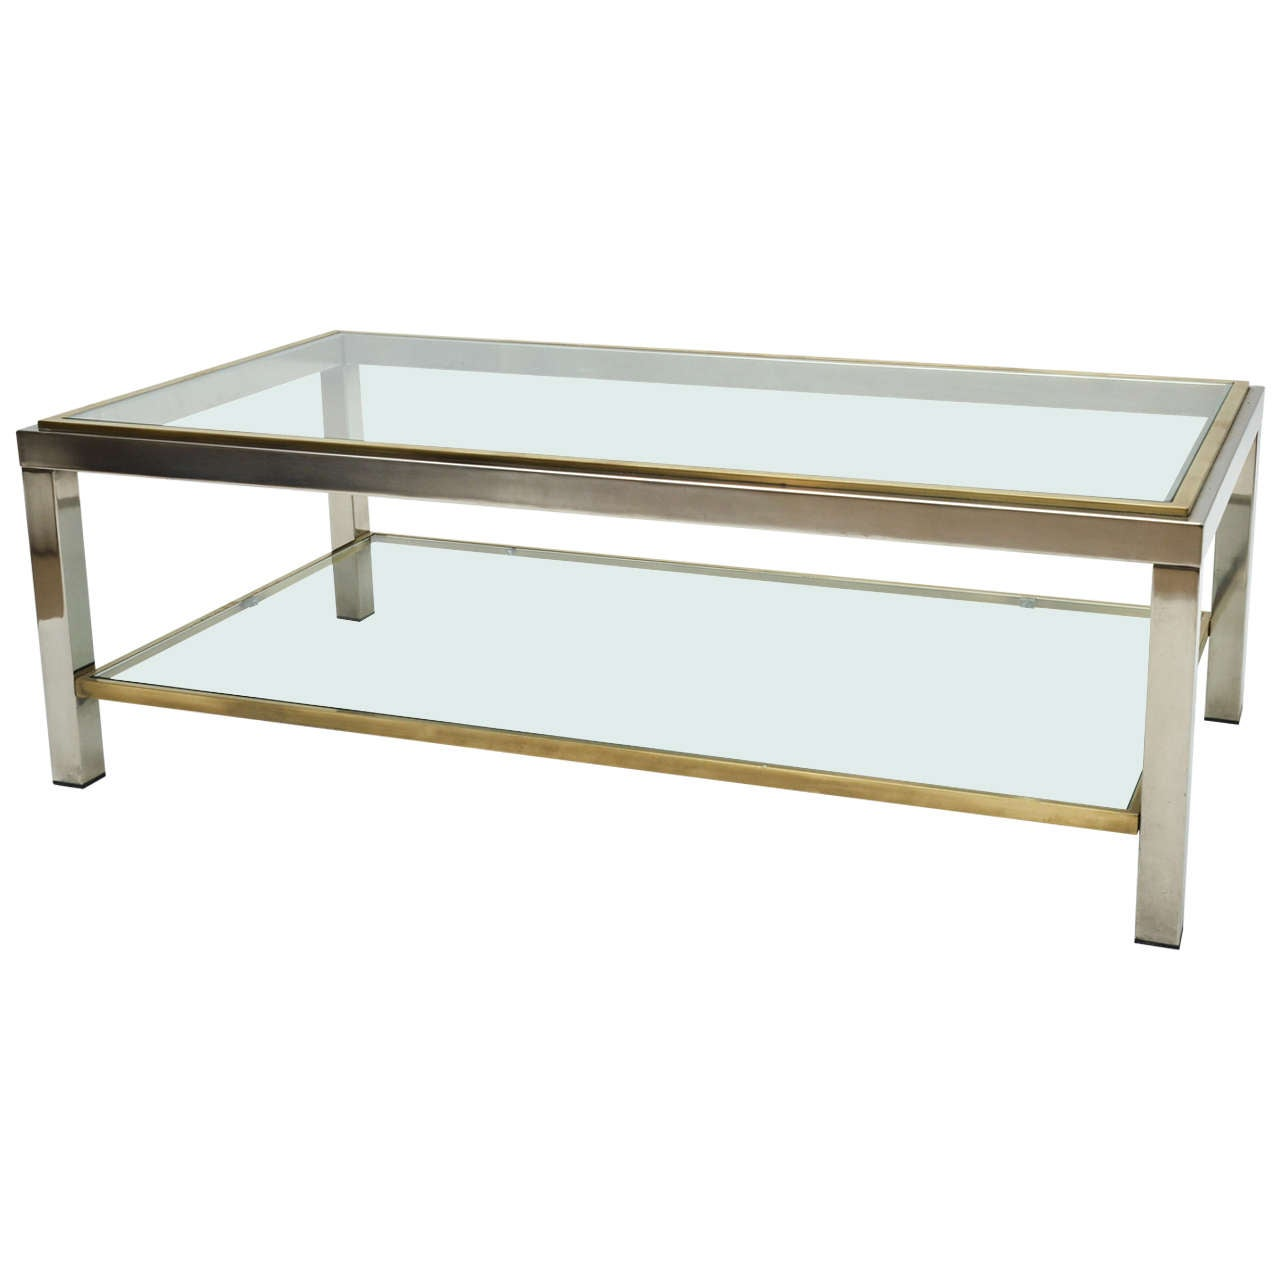 Mid century modern french brass and chrome glass coffee table at 1stdibs Glass contemporary coffee table